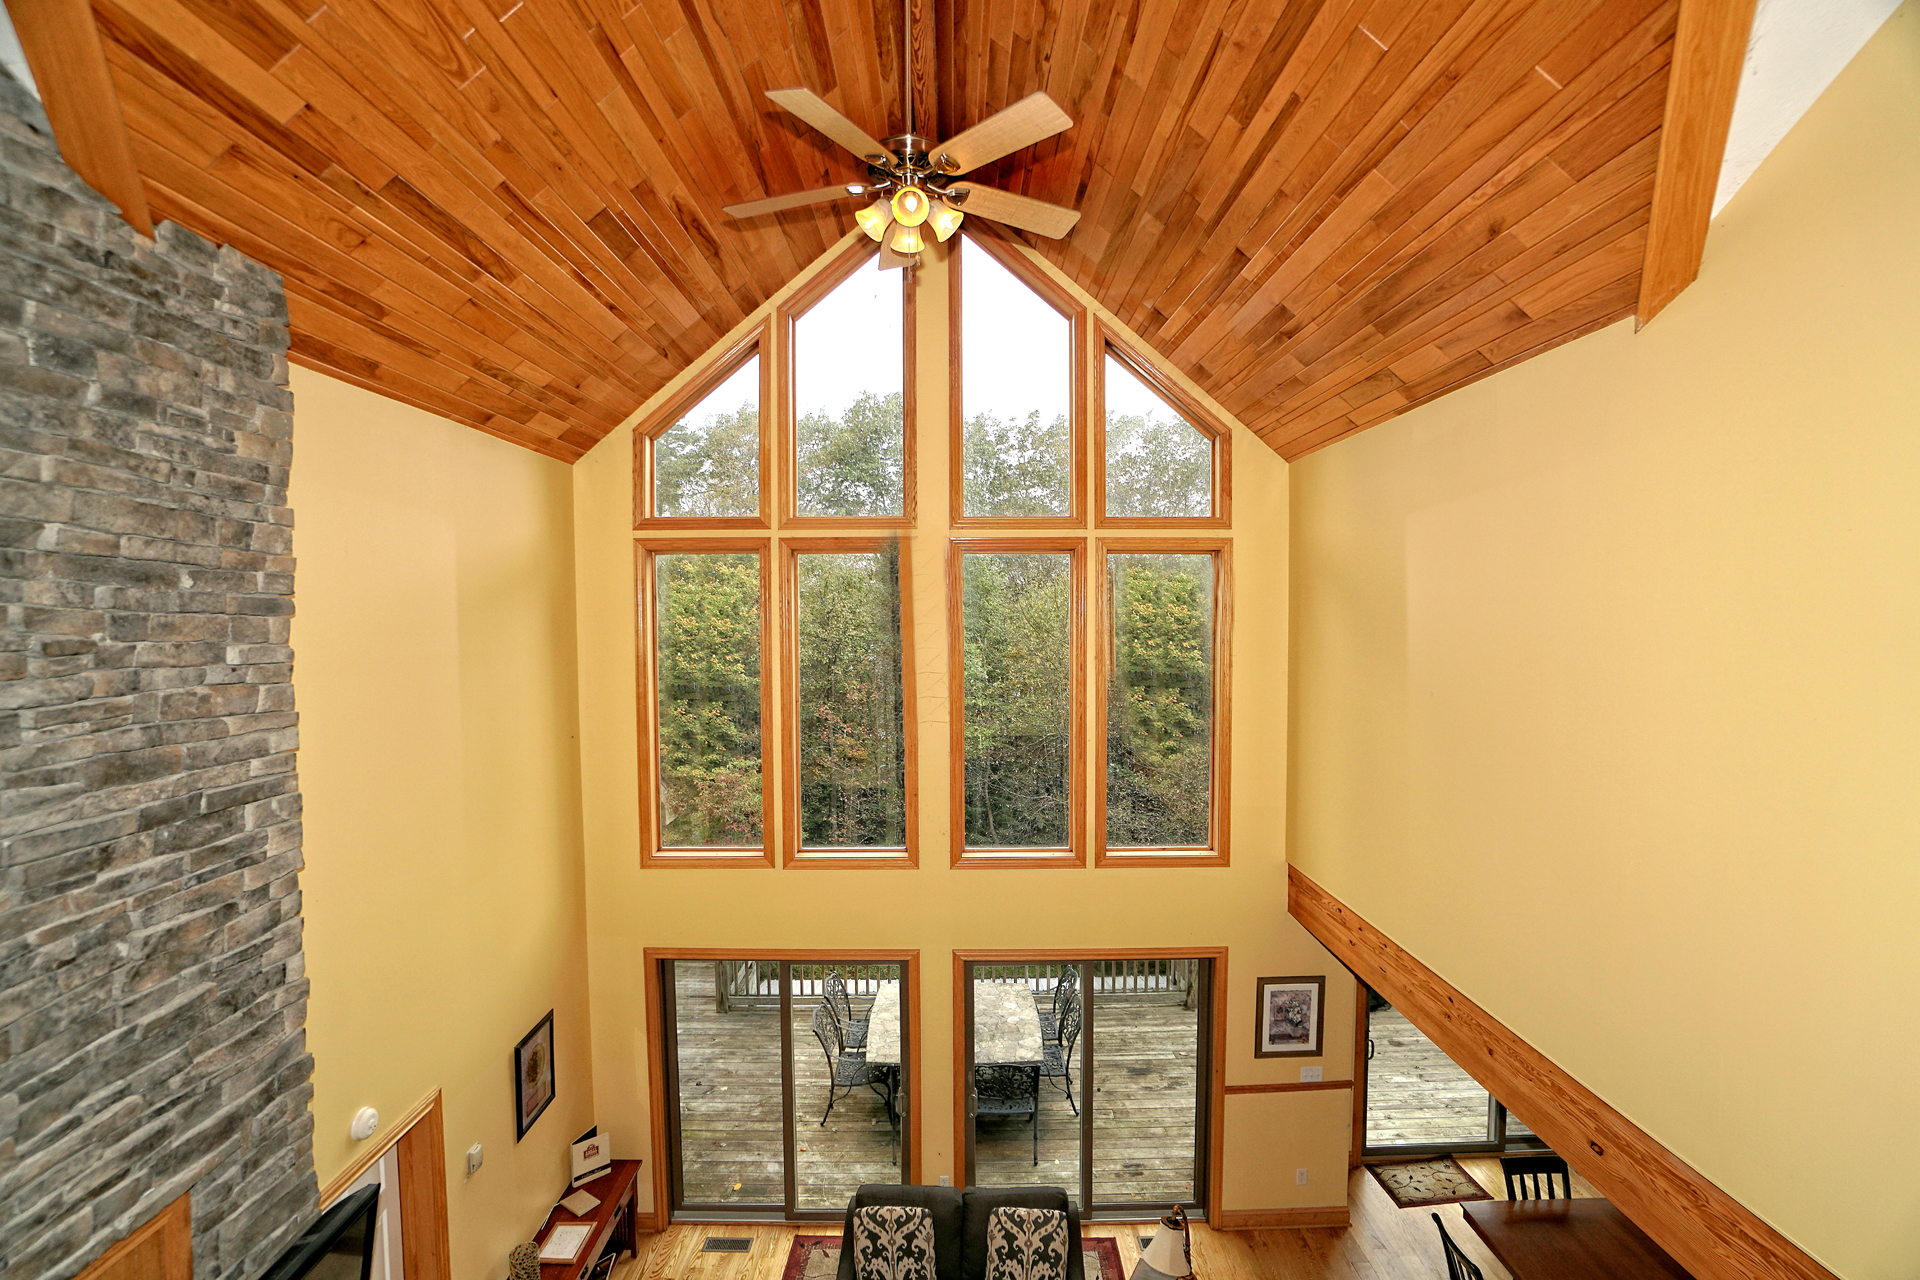 Railey Mountain Lake Vacation Home High Ceiling Windows